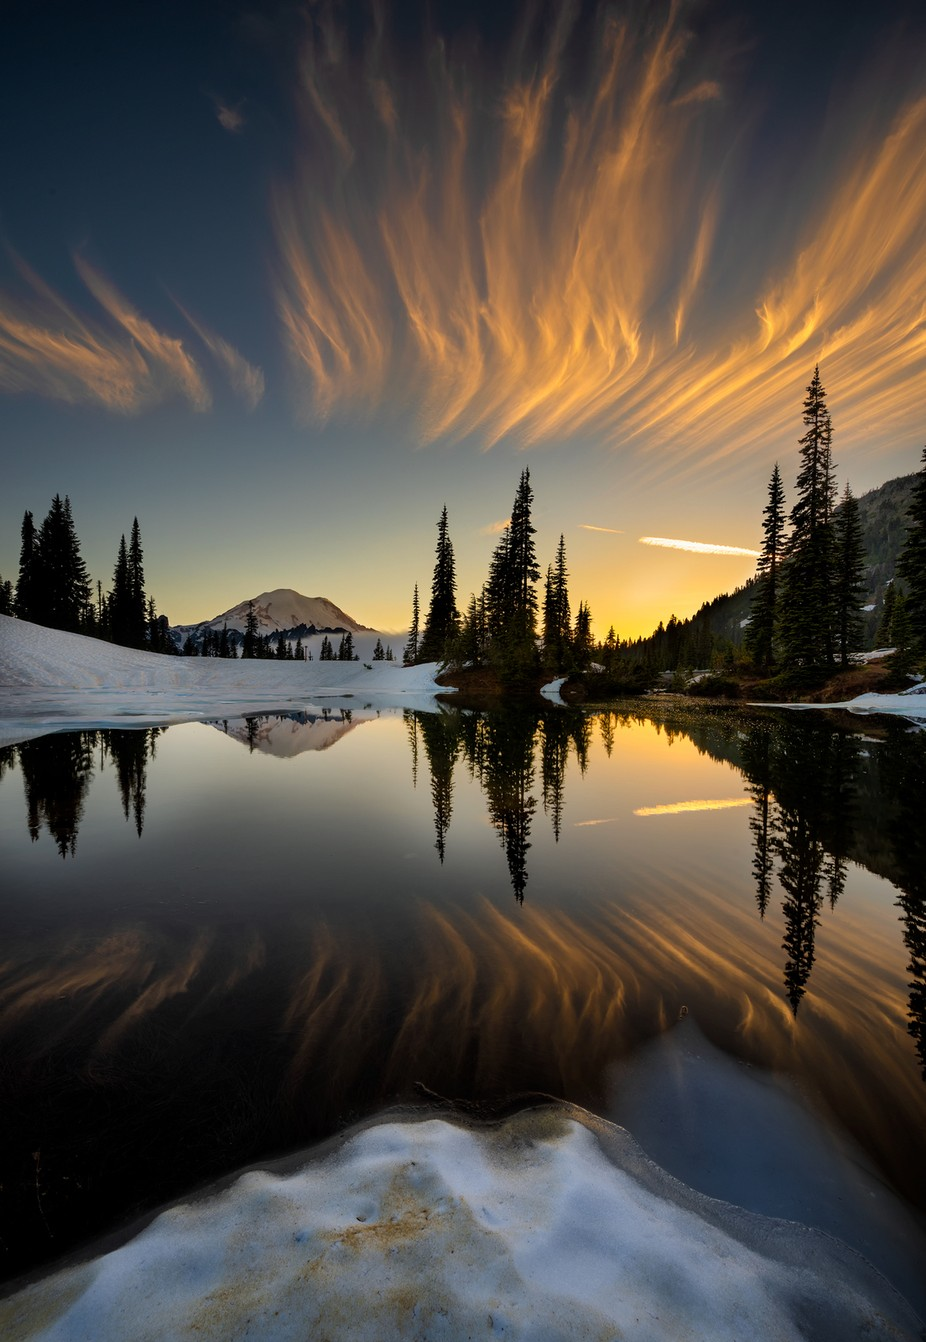 Sunset at Tipsoo Lake by vbpetercheung922585511 - The Natural Planet Photo Contest